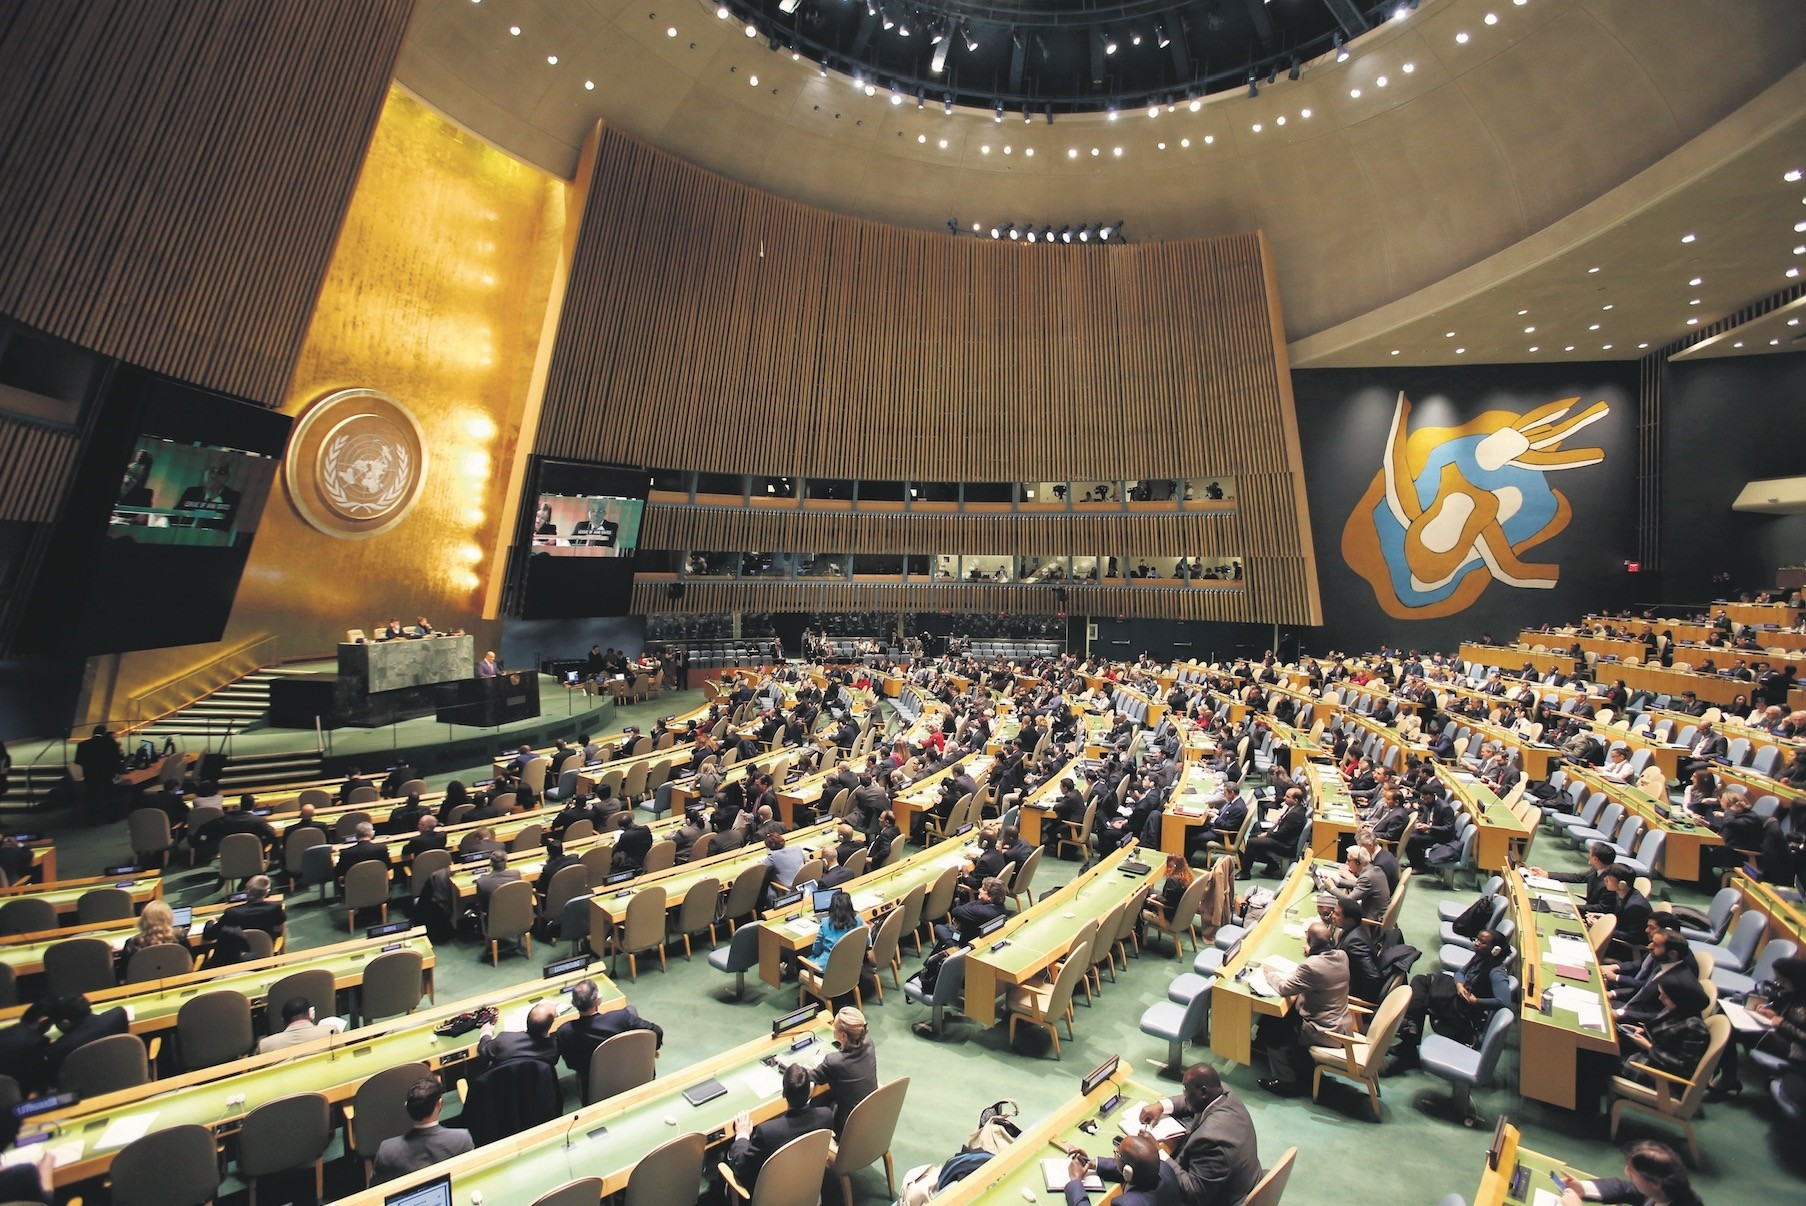 People gather at the General Assembly, prior to a vote, Thursday, Dec. 21, at the United Nations headquarters.